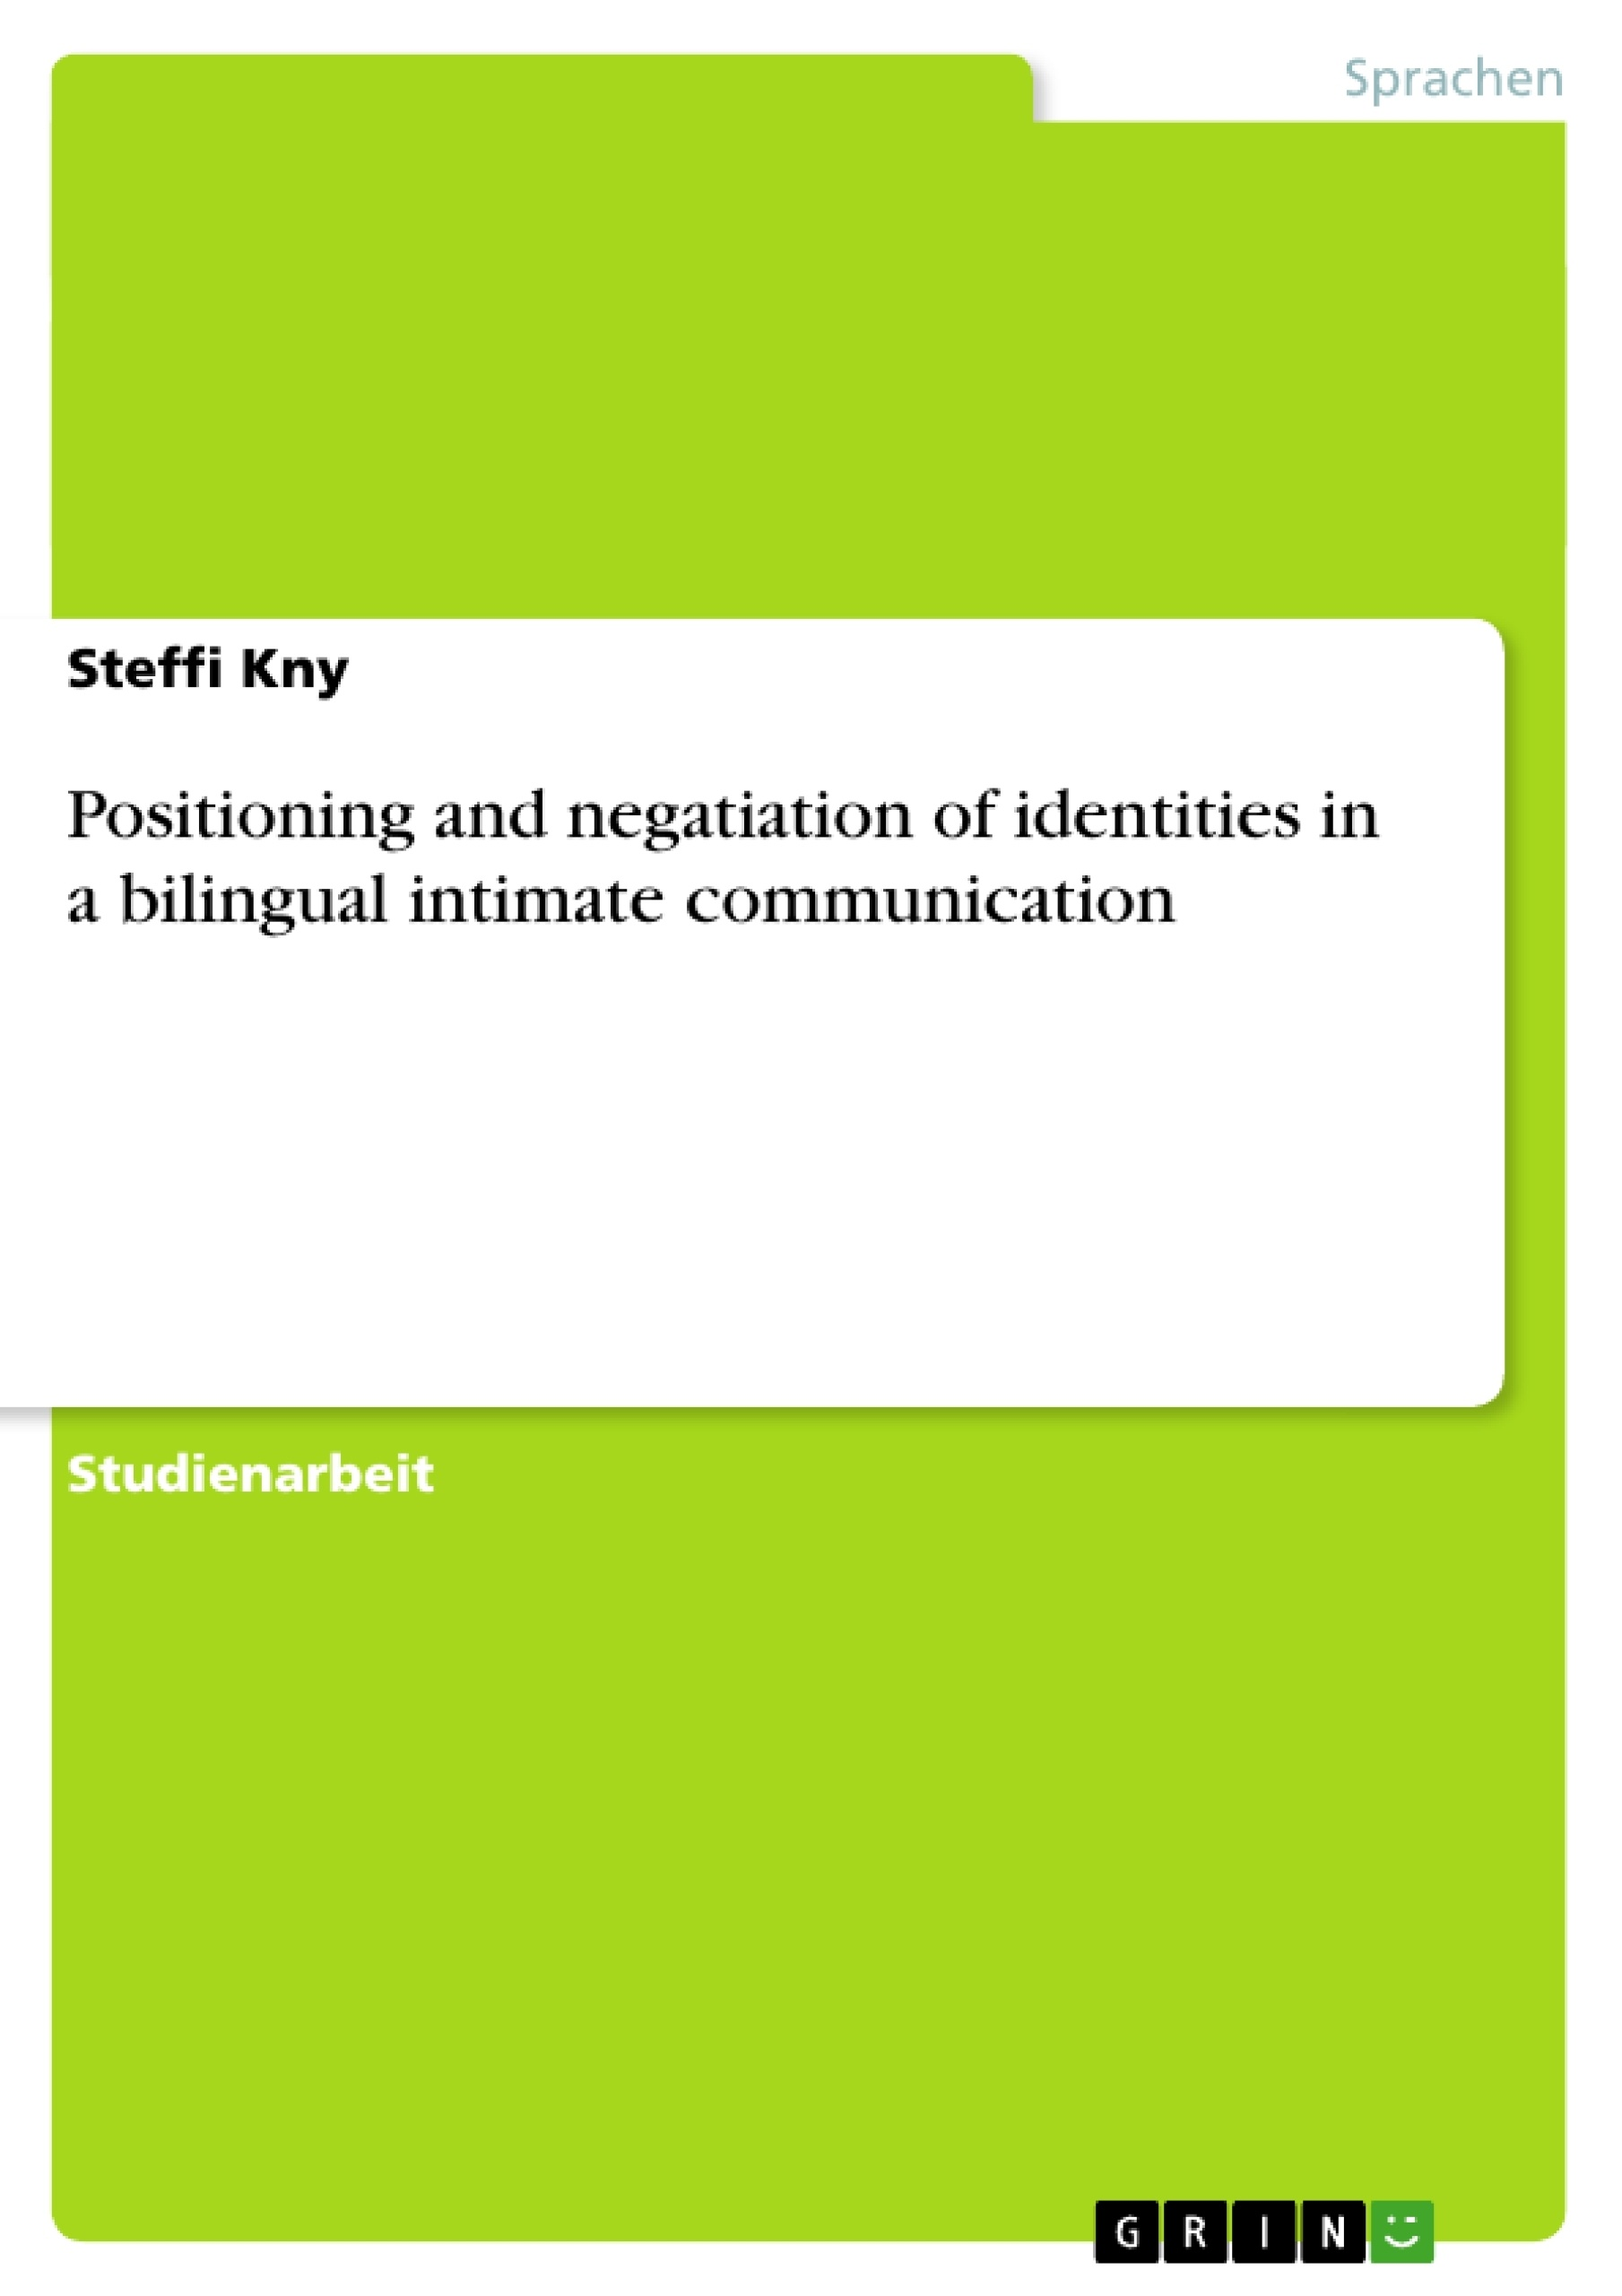 Titel: Positioning and negatiation of identities in a bilingual intimate communication